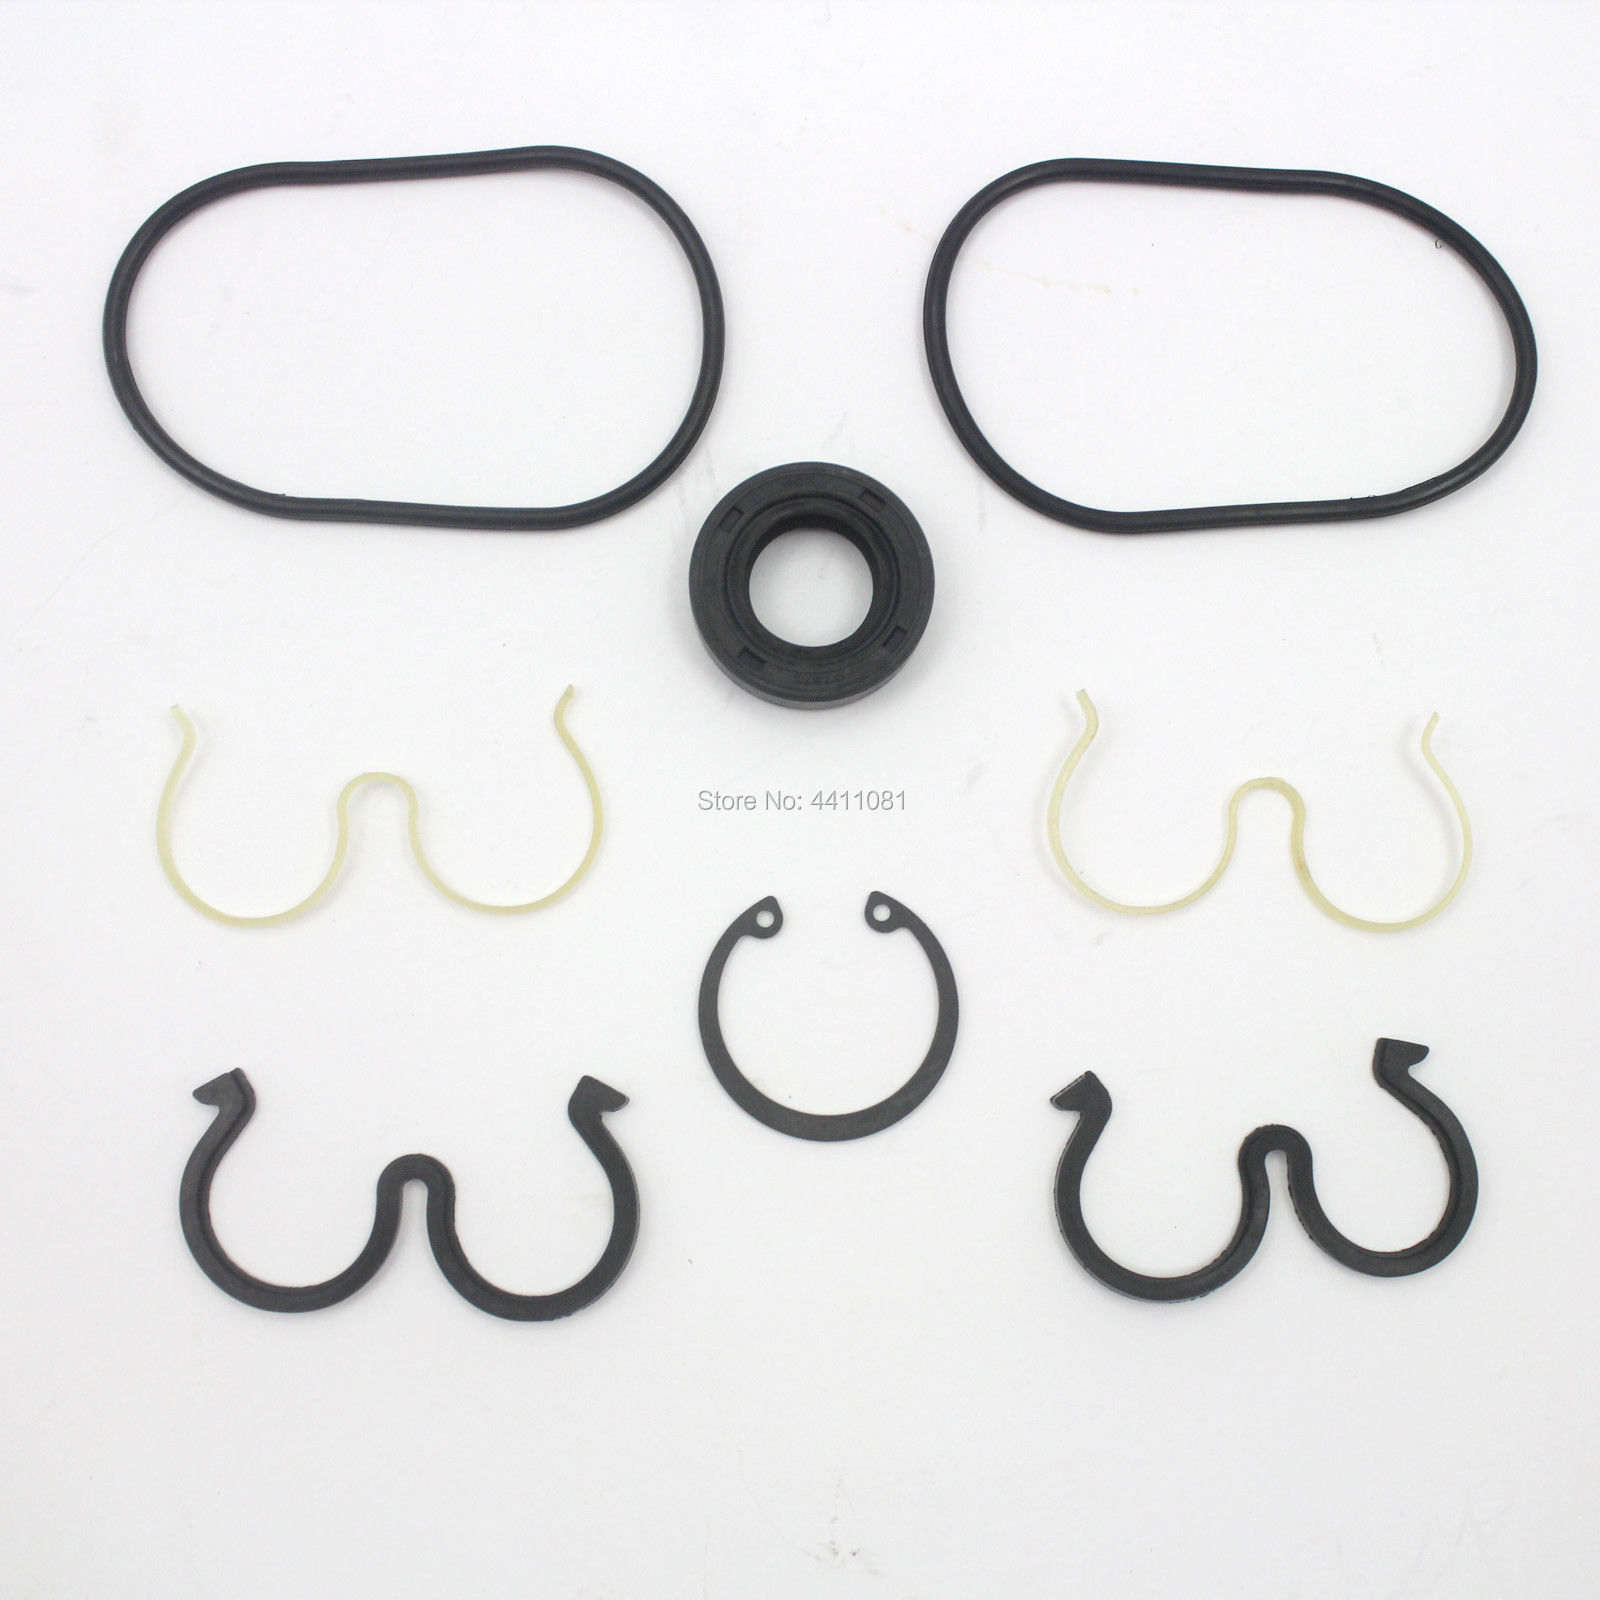 For Hitachi EX200-3 Gear Pump Seal Repair Service Kit Excavator Oil Seals, 3 month warranty